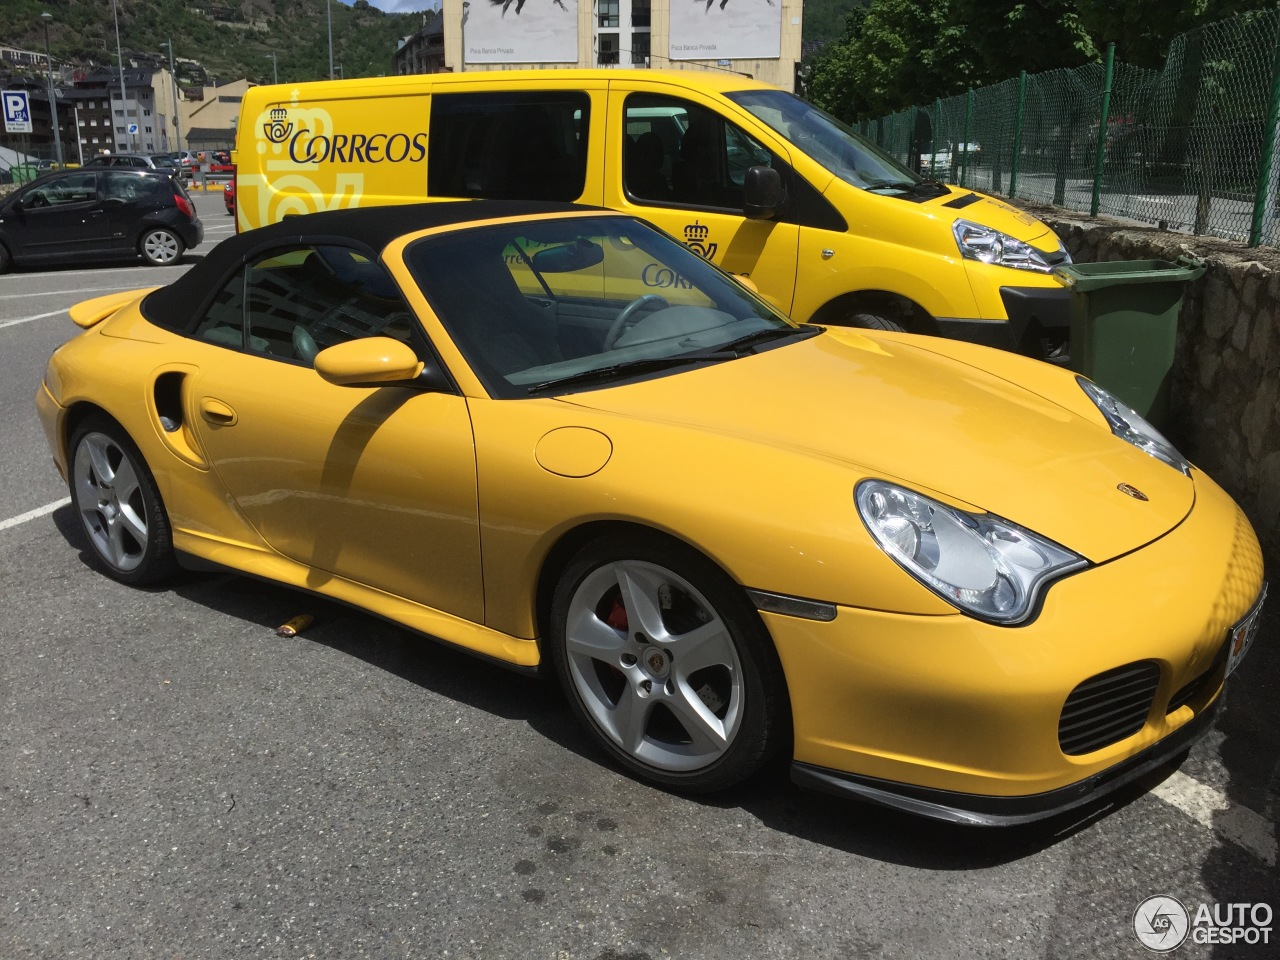 porsche 996 turbo yellow images galleries with a bite. Black Bedroom Furniture Sets. Home Design Ideas